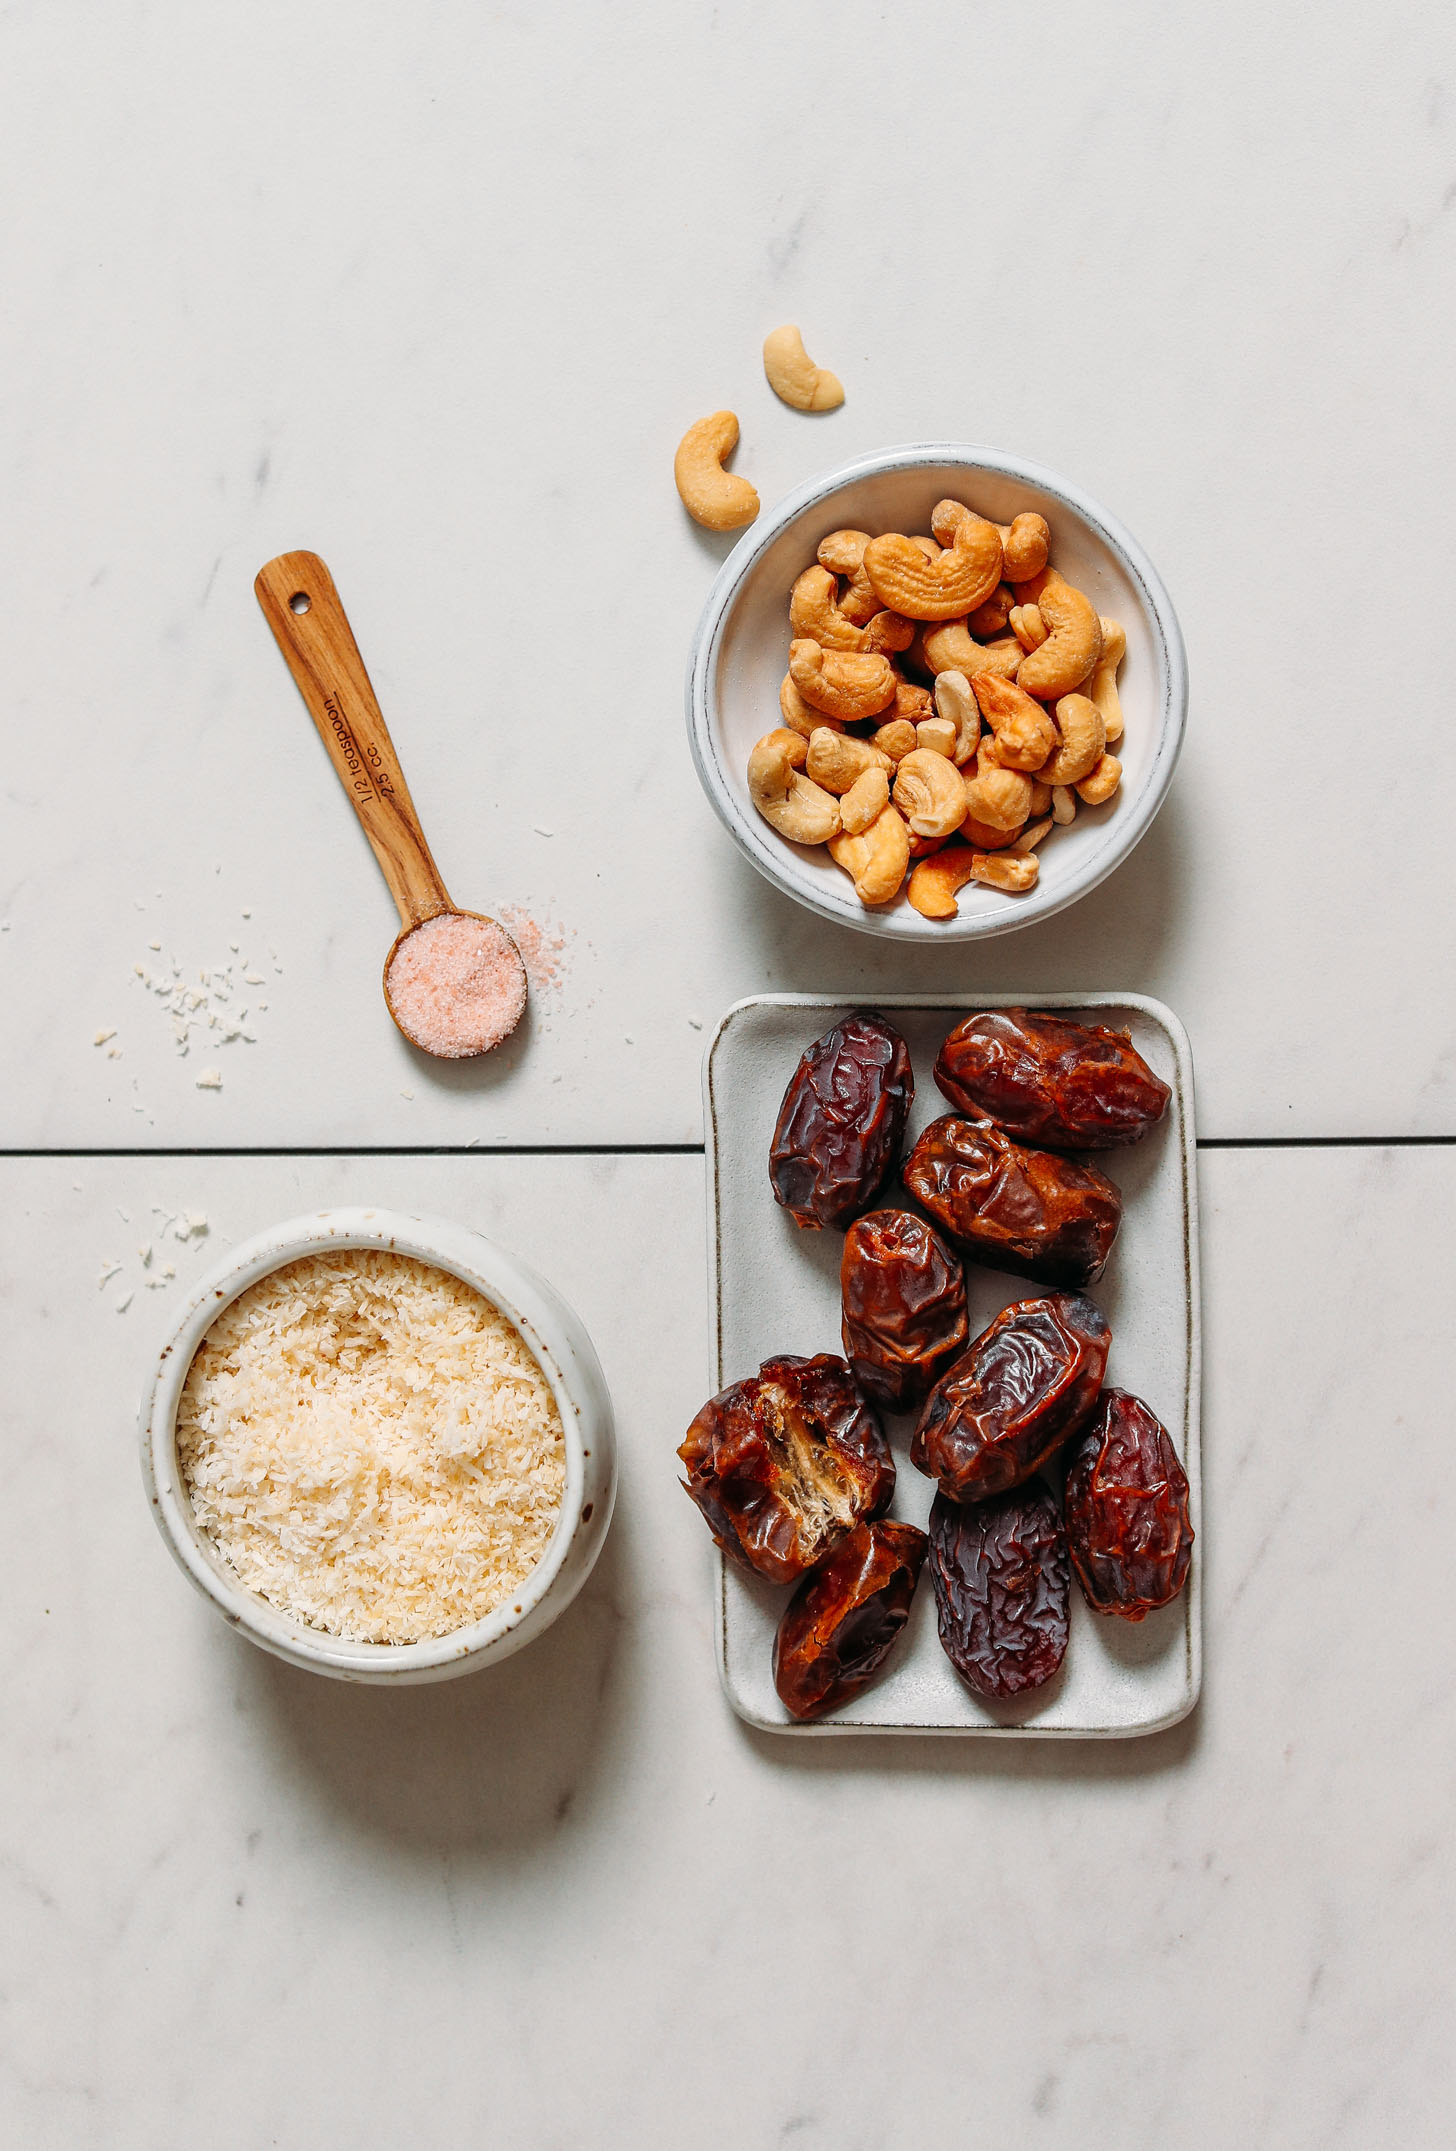 Cashews, medjool dates, shredded coconut, and sea salt